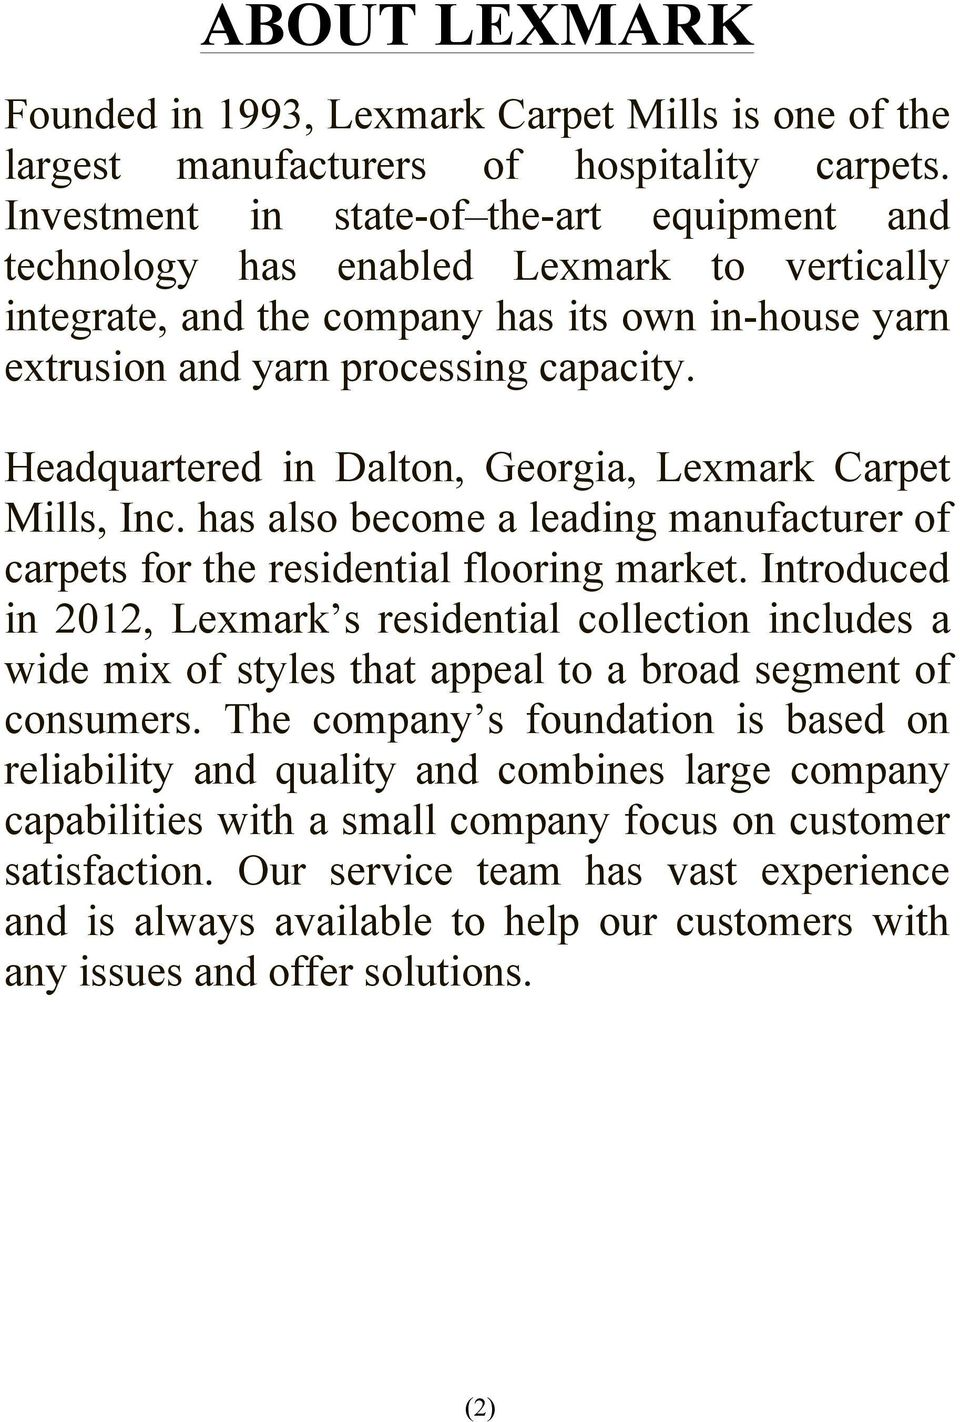 Headquartered in Dalton, Georgia, Lexmark Carpet Mills, Inc. has also become a leading manufacturer of carpets for the residential flooring market.